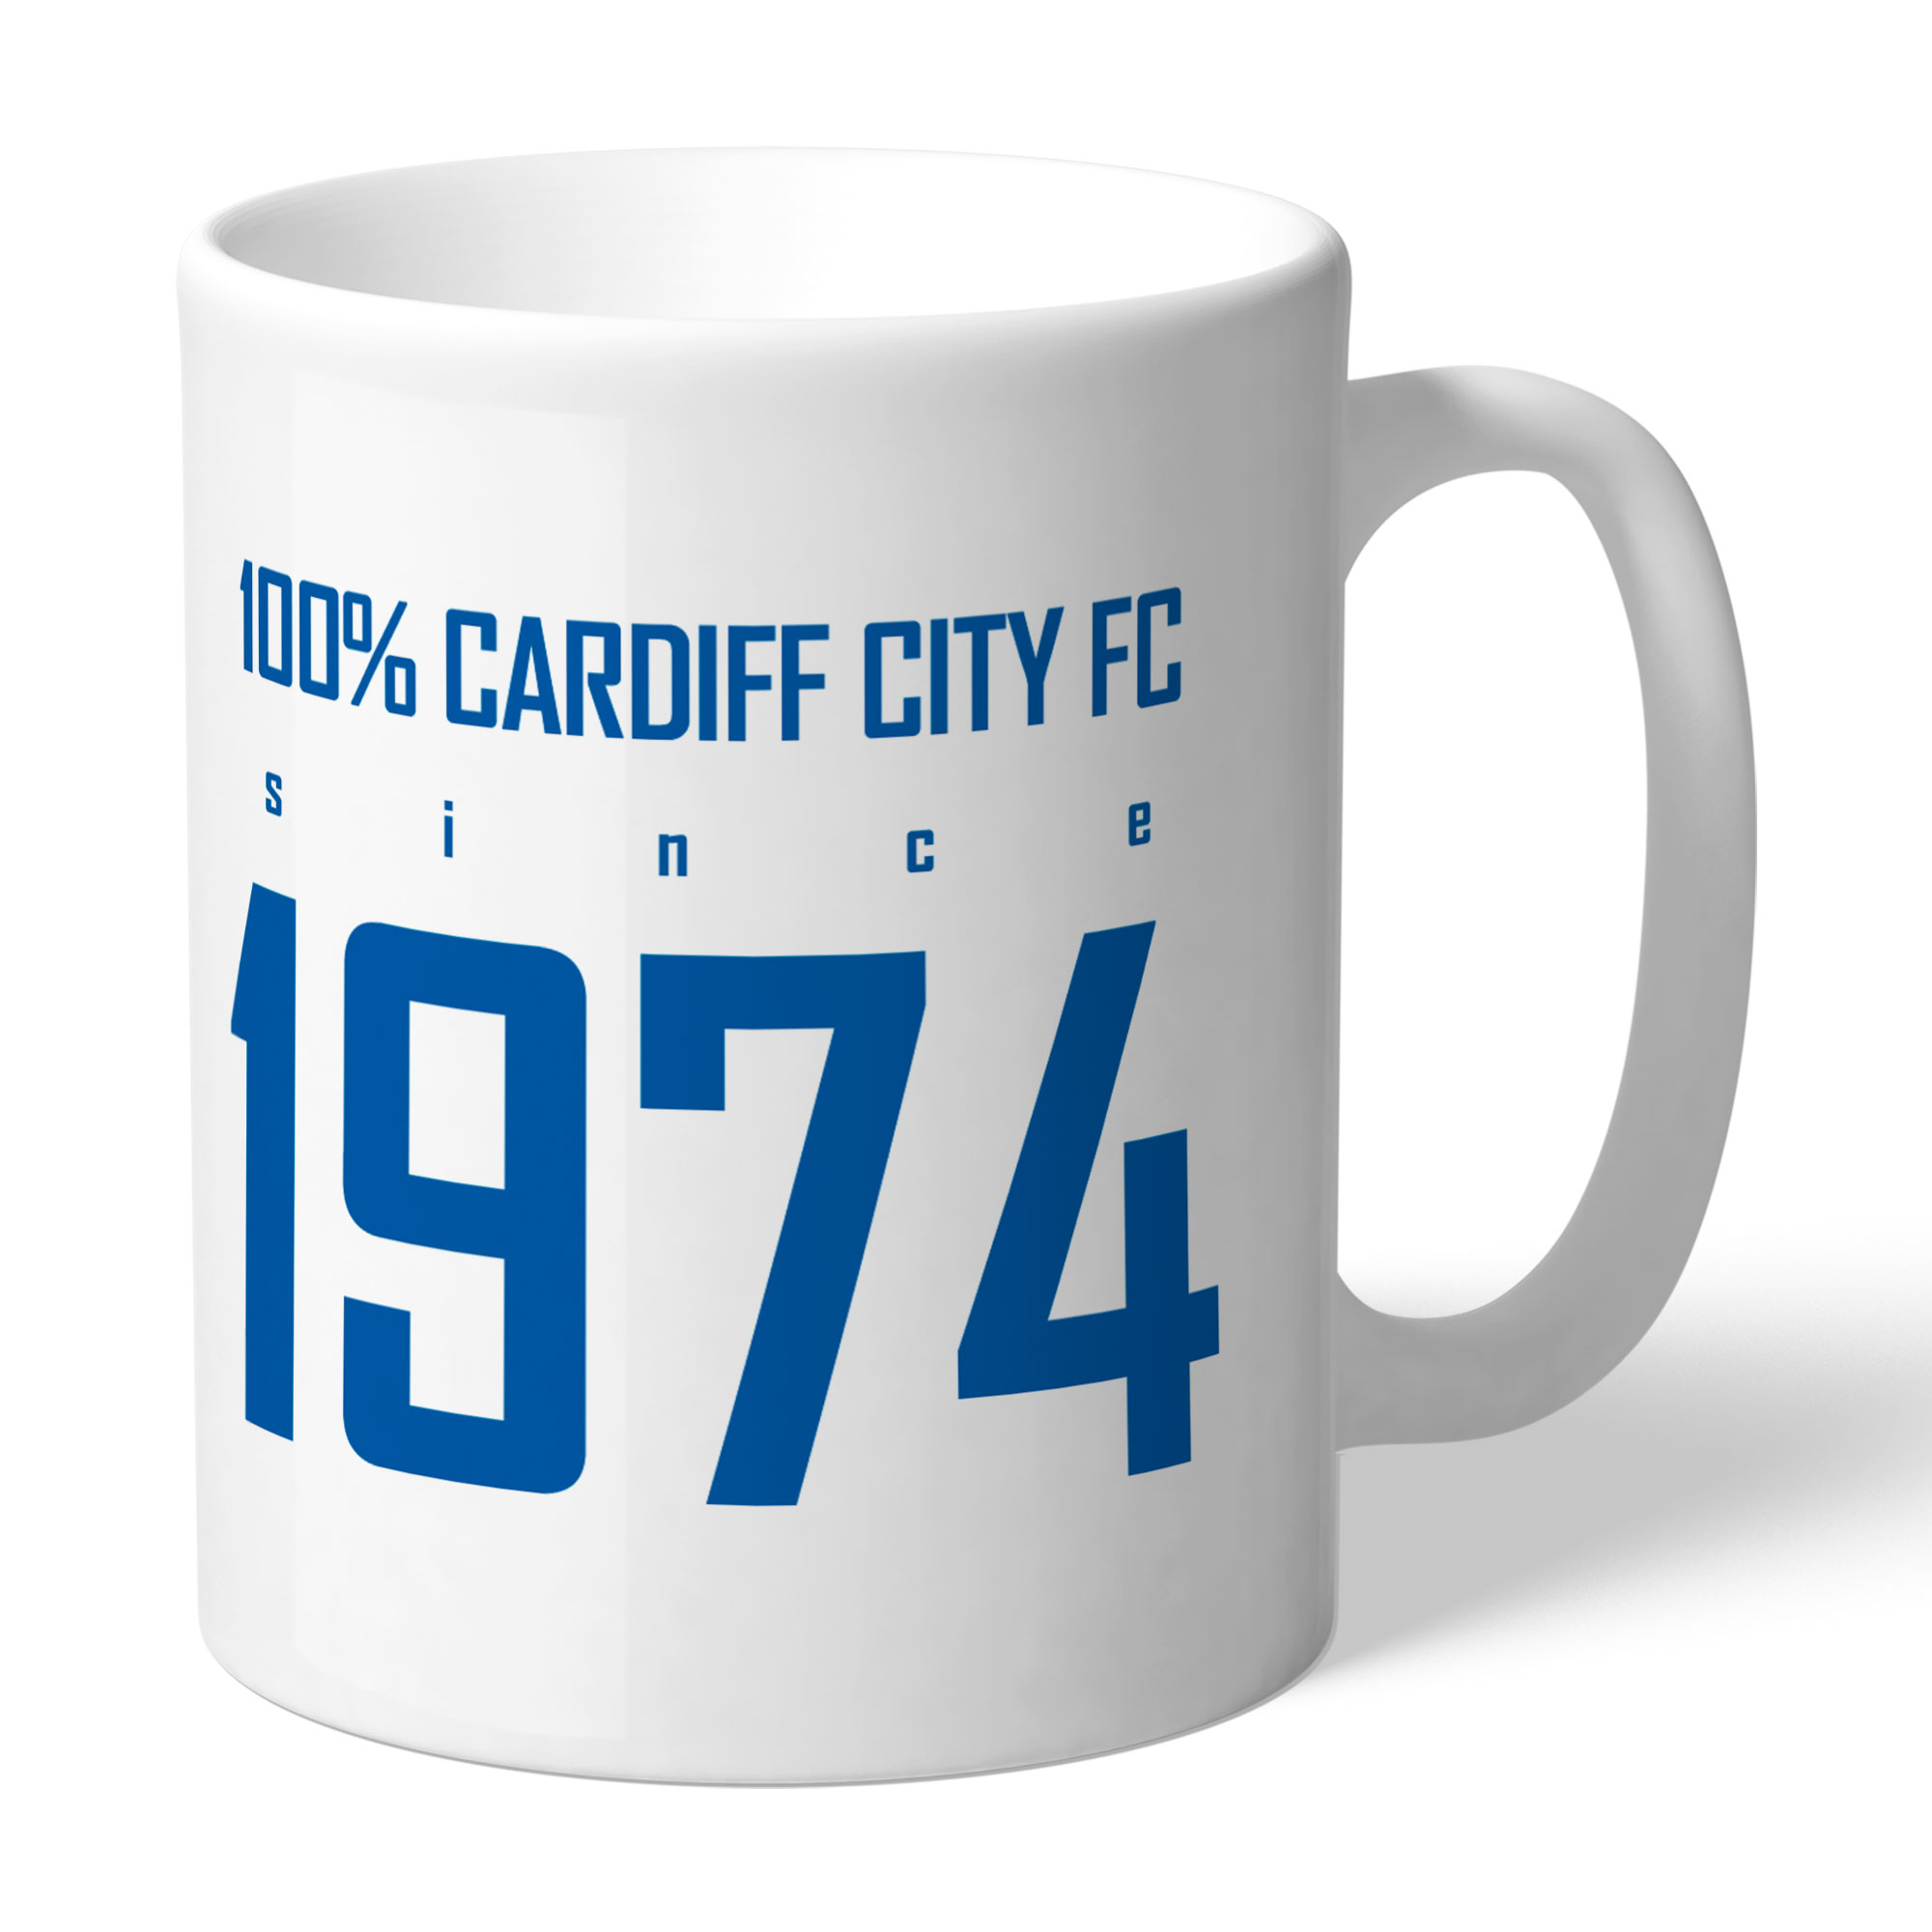 Cardiff City FC 100 Percent Mug